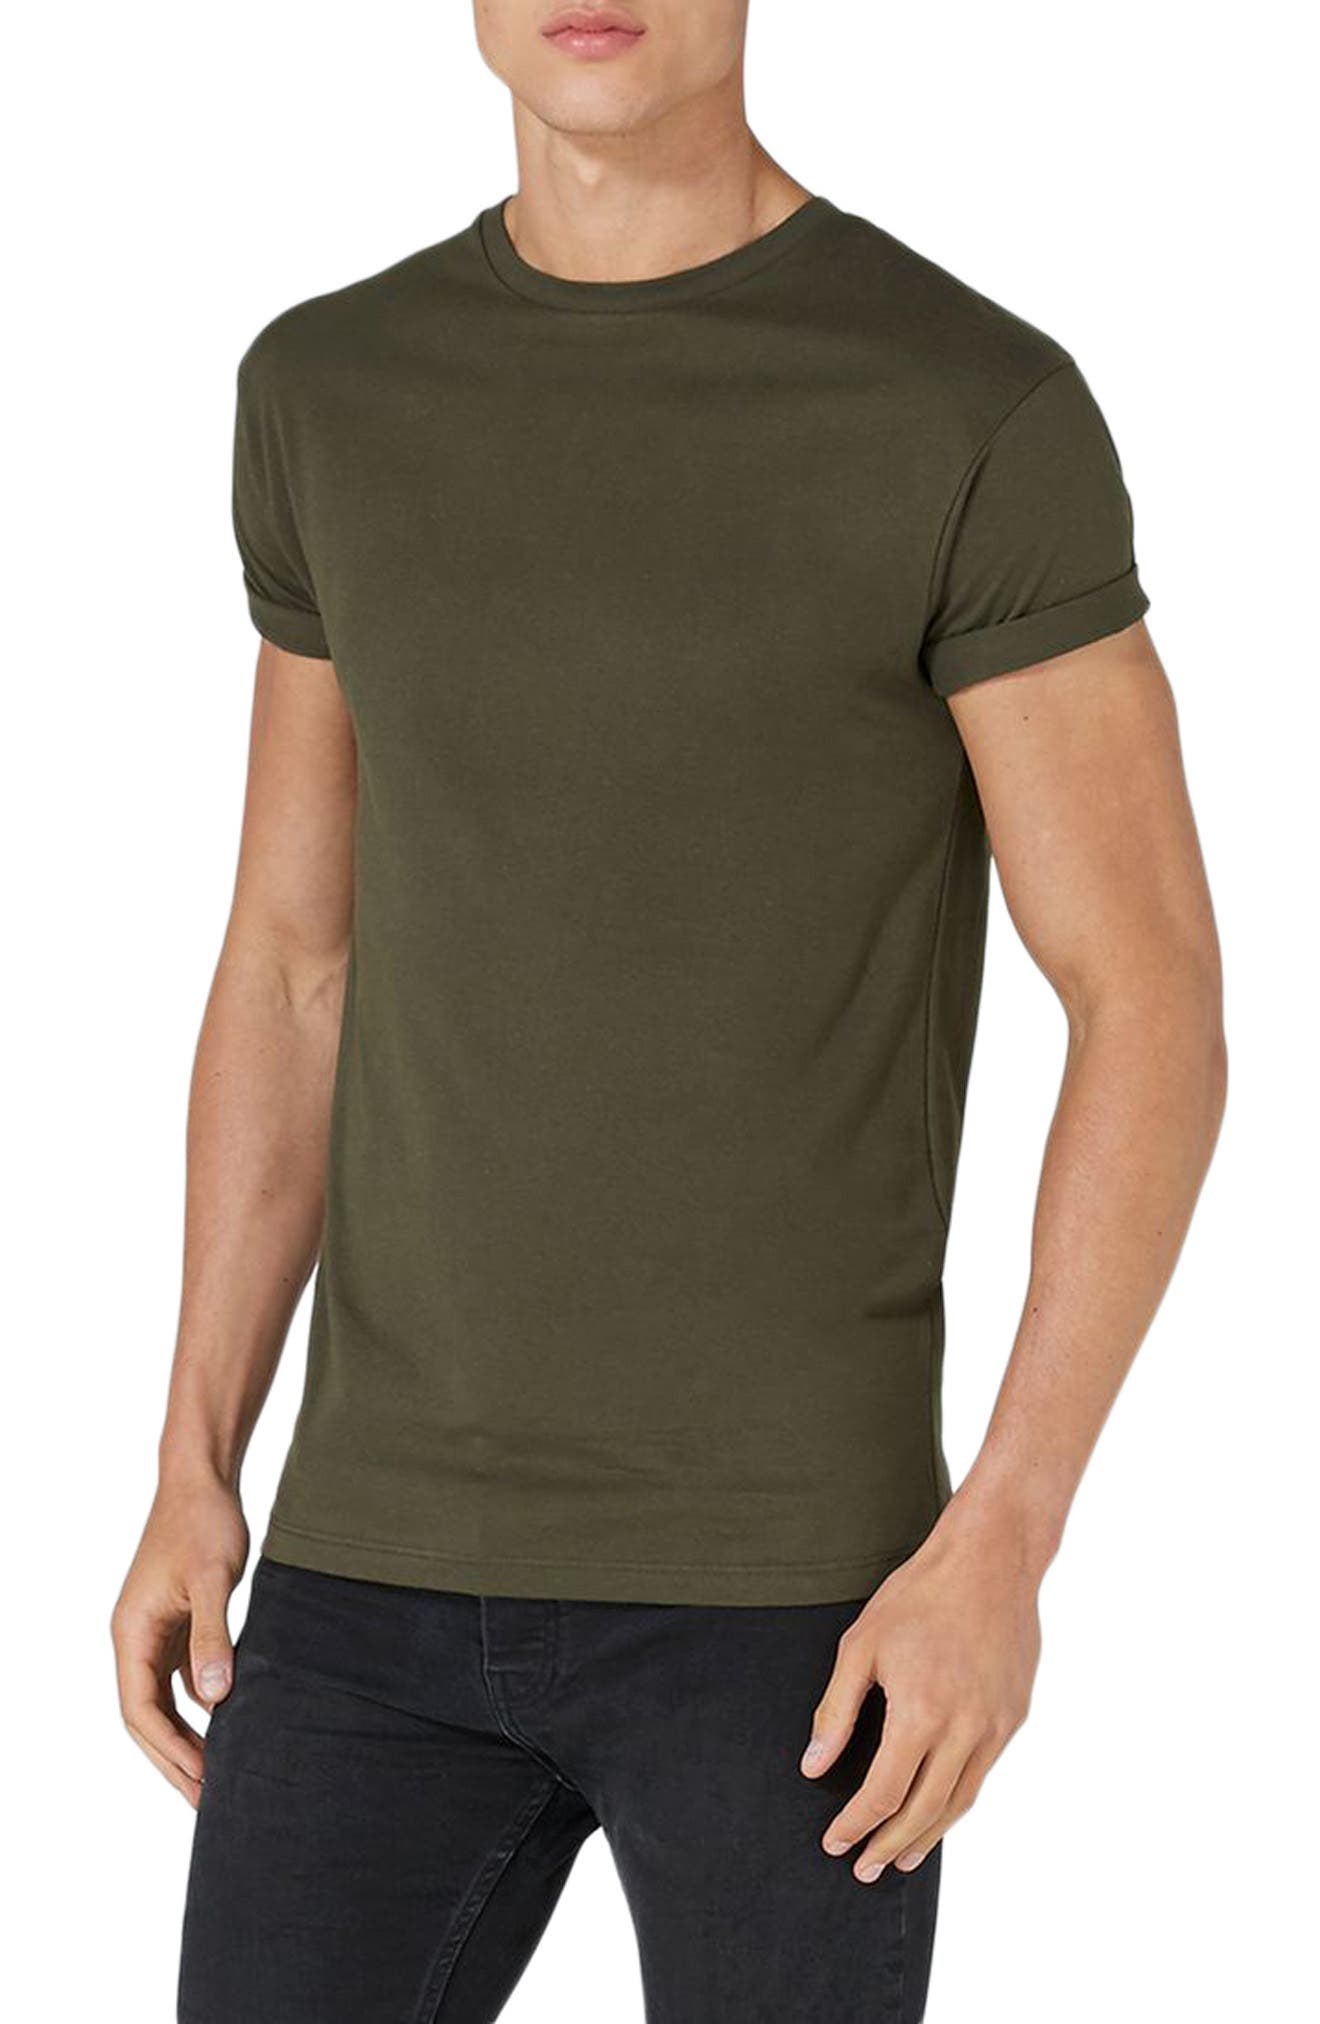 Alternate Image 1 Selected - Topman Muscle Fit Roller T-Shirt